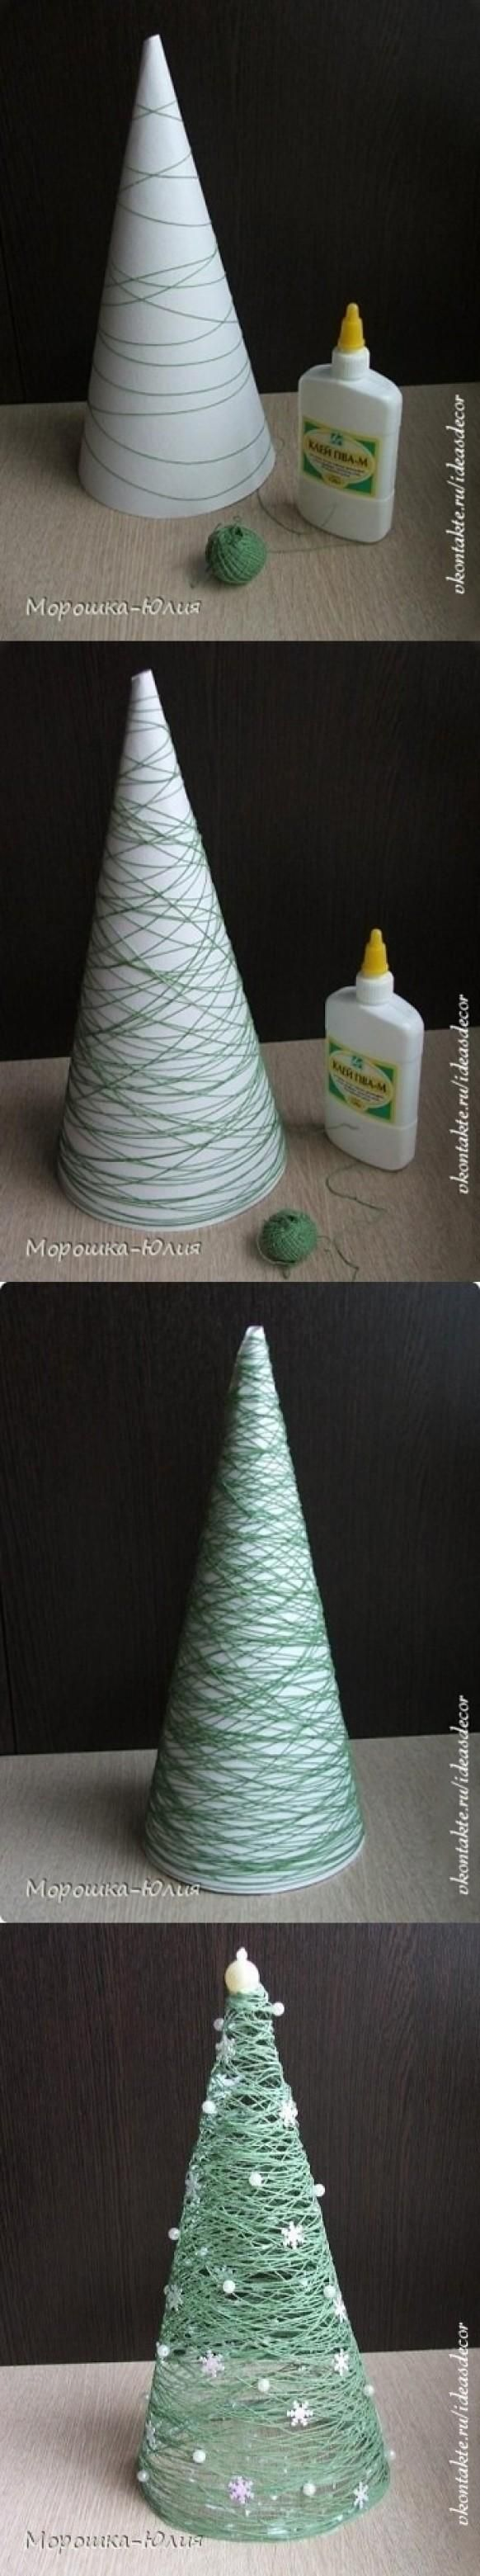 Cute Christmas tree. Good project for the kiddies.